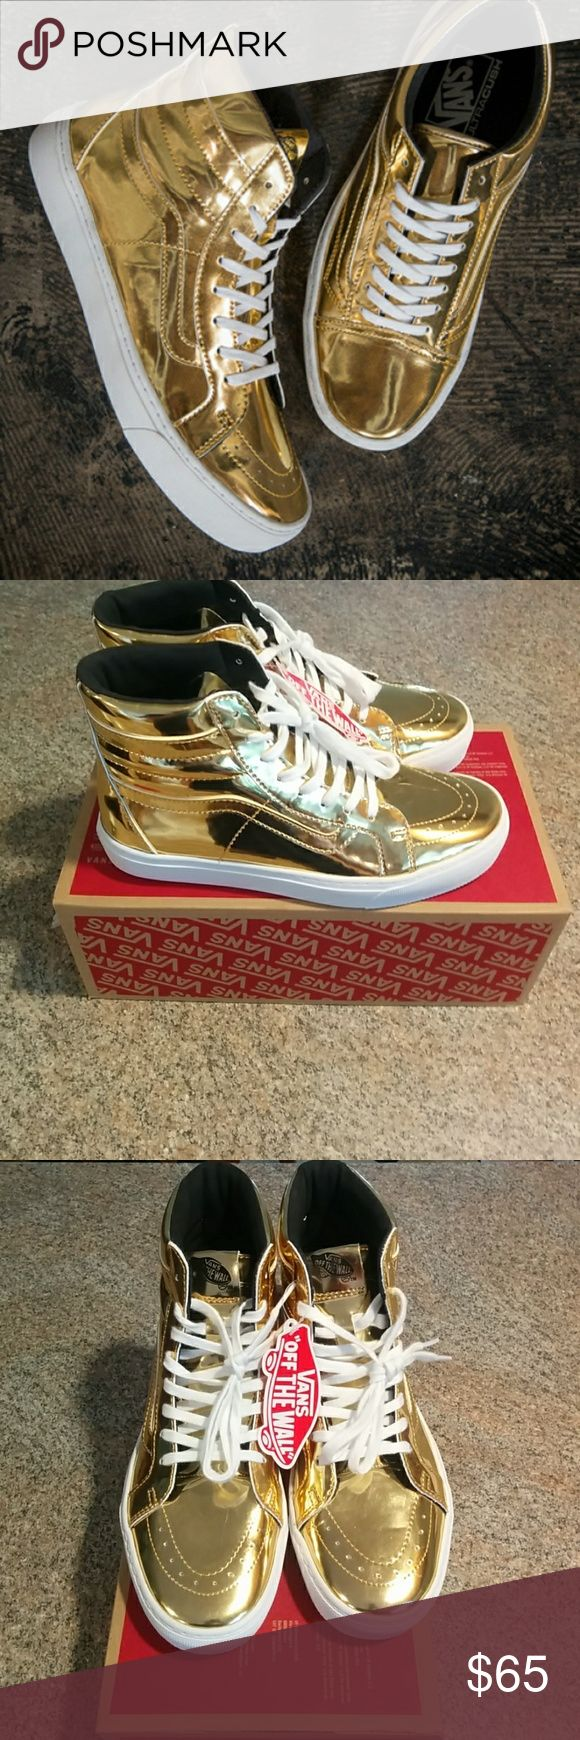 """Exclusive Vans Sk8 Hi """"Olympic Gold"""" NWT Rare Vans Sk8 Hi Metallic Gold Size Women's 9 Mens 7.5 Exclusive release 2016 Rio Olympic Games Vans released 4 very limited edition gold and silver colorways. ONLY Released at Champs certain location very very rare shoe Vans Shoes"""